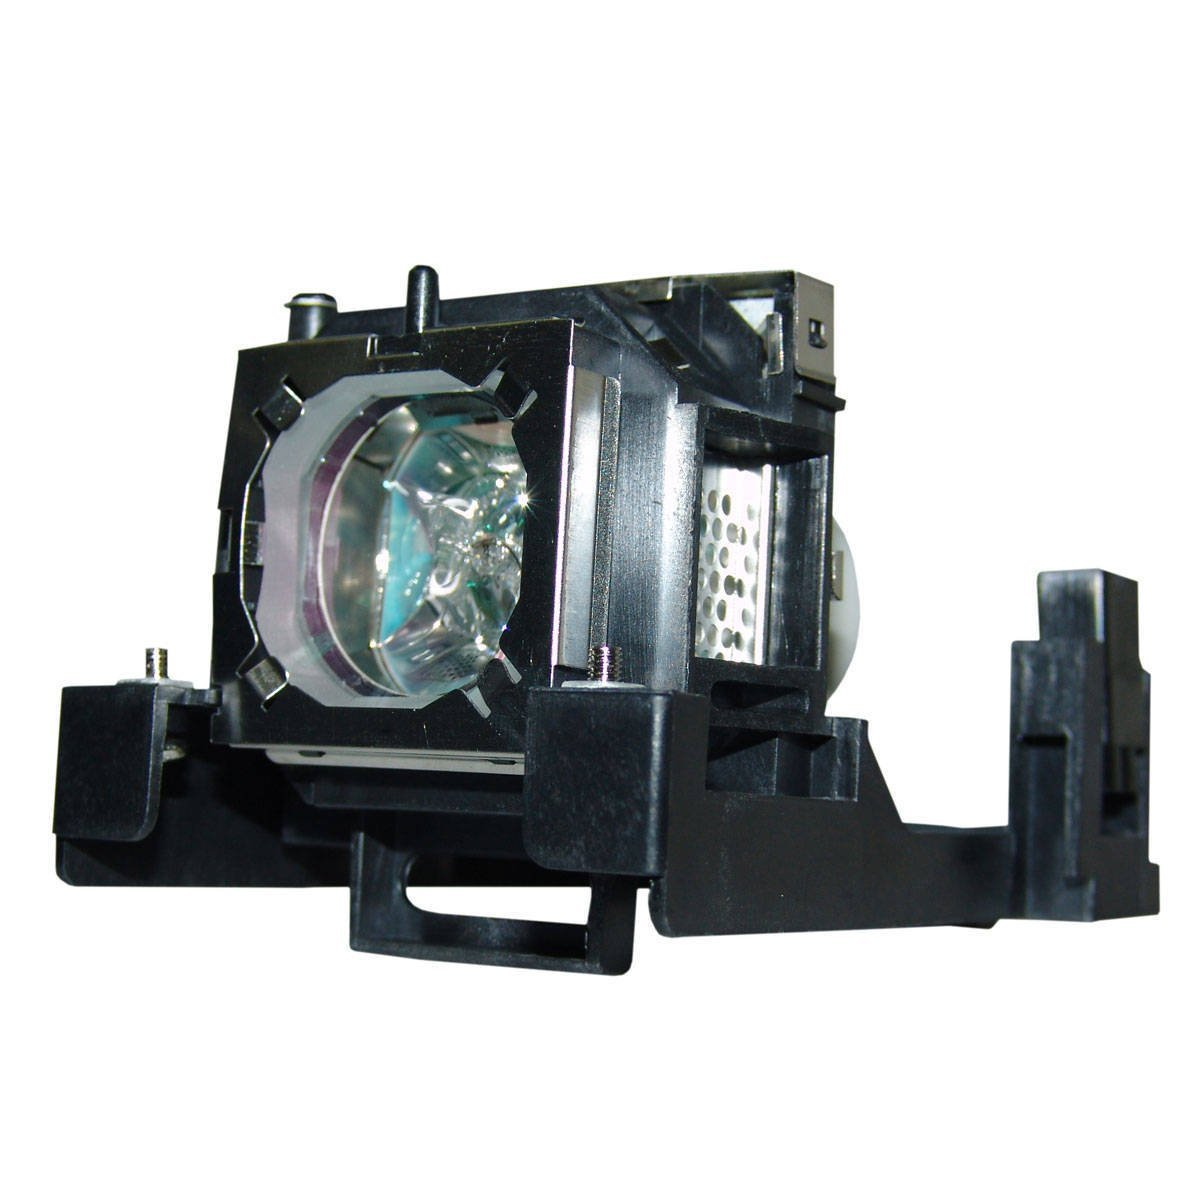 POA-LMP140 POALMP140 LMP140 610-350-2892 for SANYO PLC-WL2500 PLC-WL2501 PLC-WL2503 Projector Lamp Bulb with housing compatible projector lamp bulbs poa lmp136 for sanyo plc xm150 plc wm5500 plc zm5000l plc xm150l